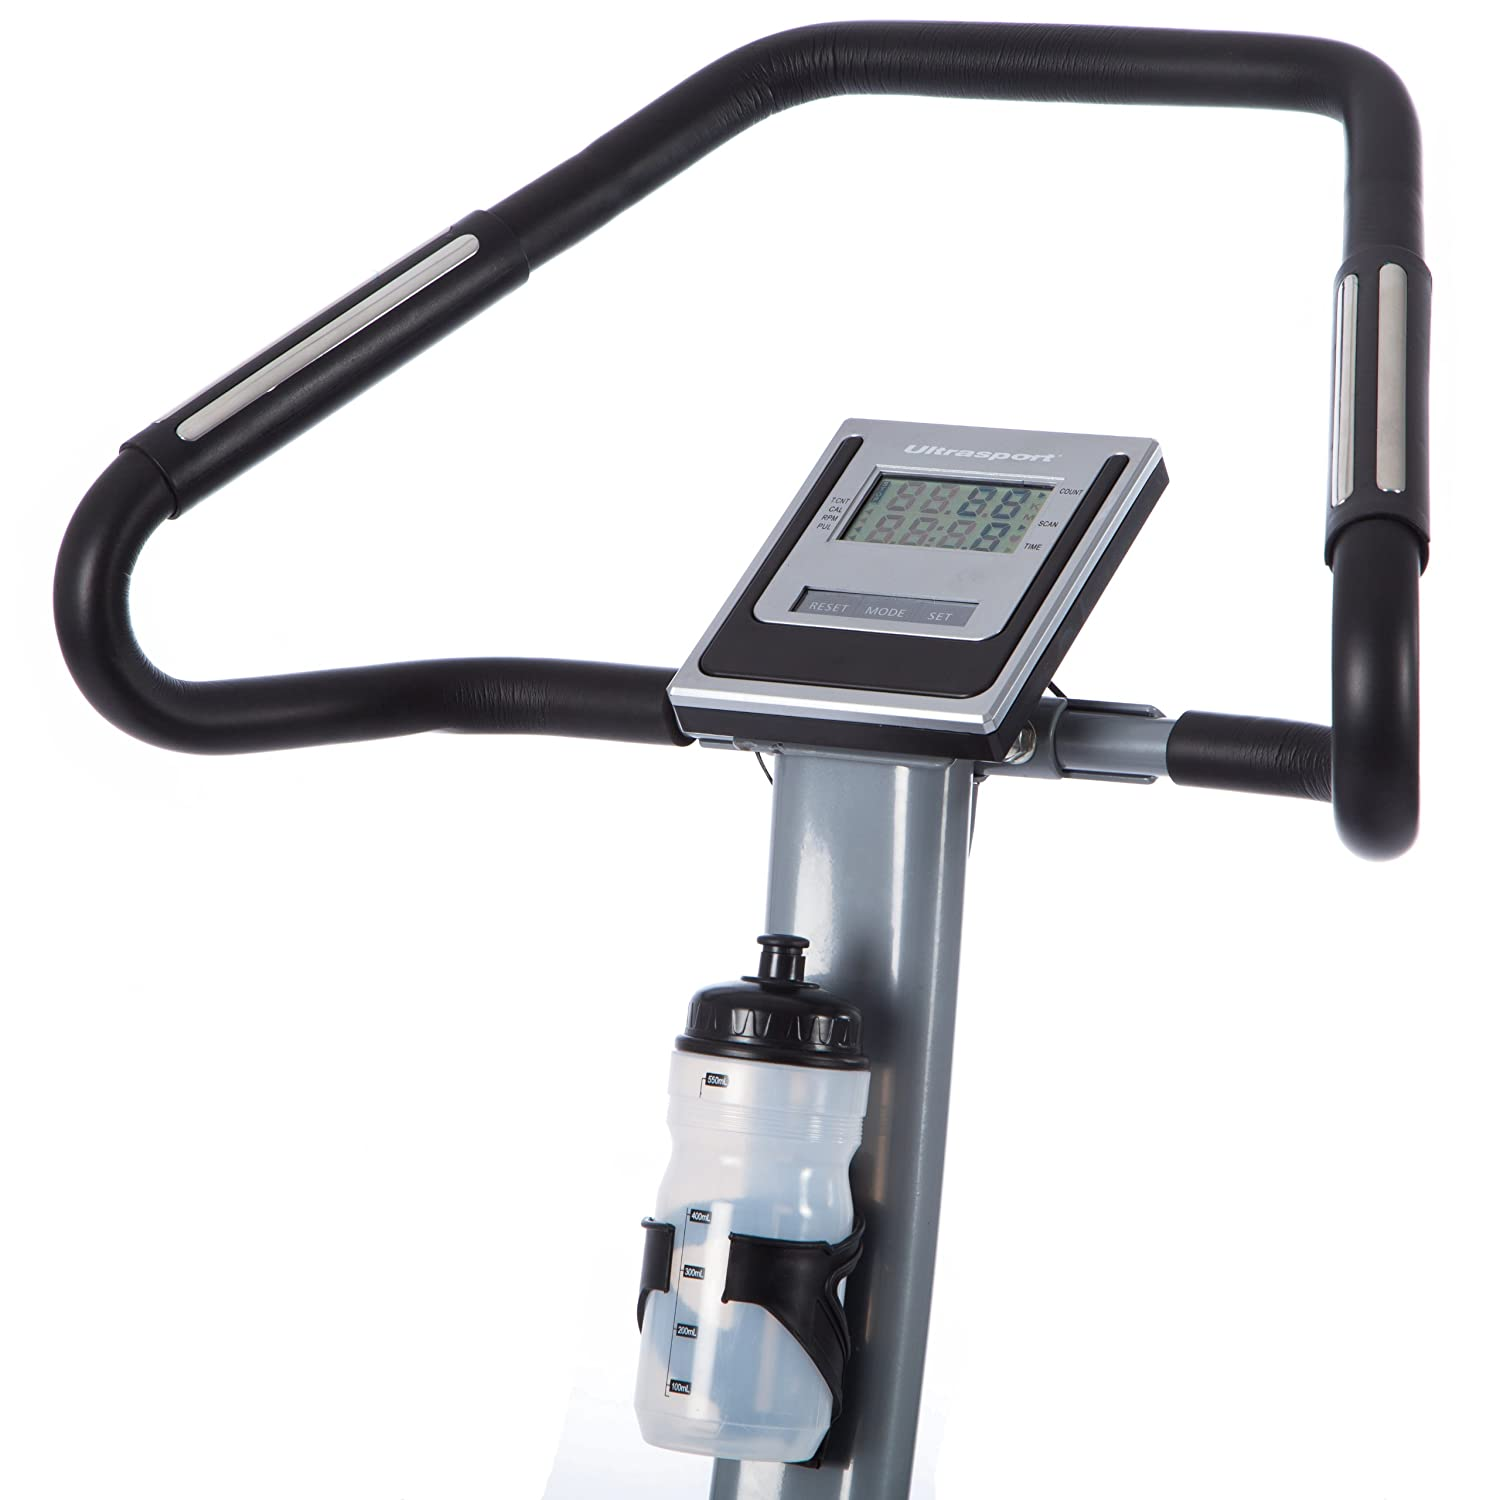 Ultrasport Power Stepper Exercise Device with Wrist Pulse Sensors Silver: Amazon.es: Electrónica